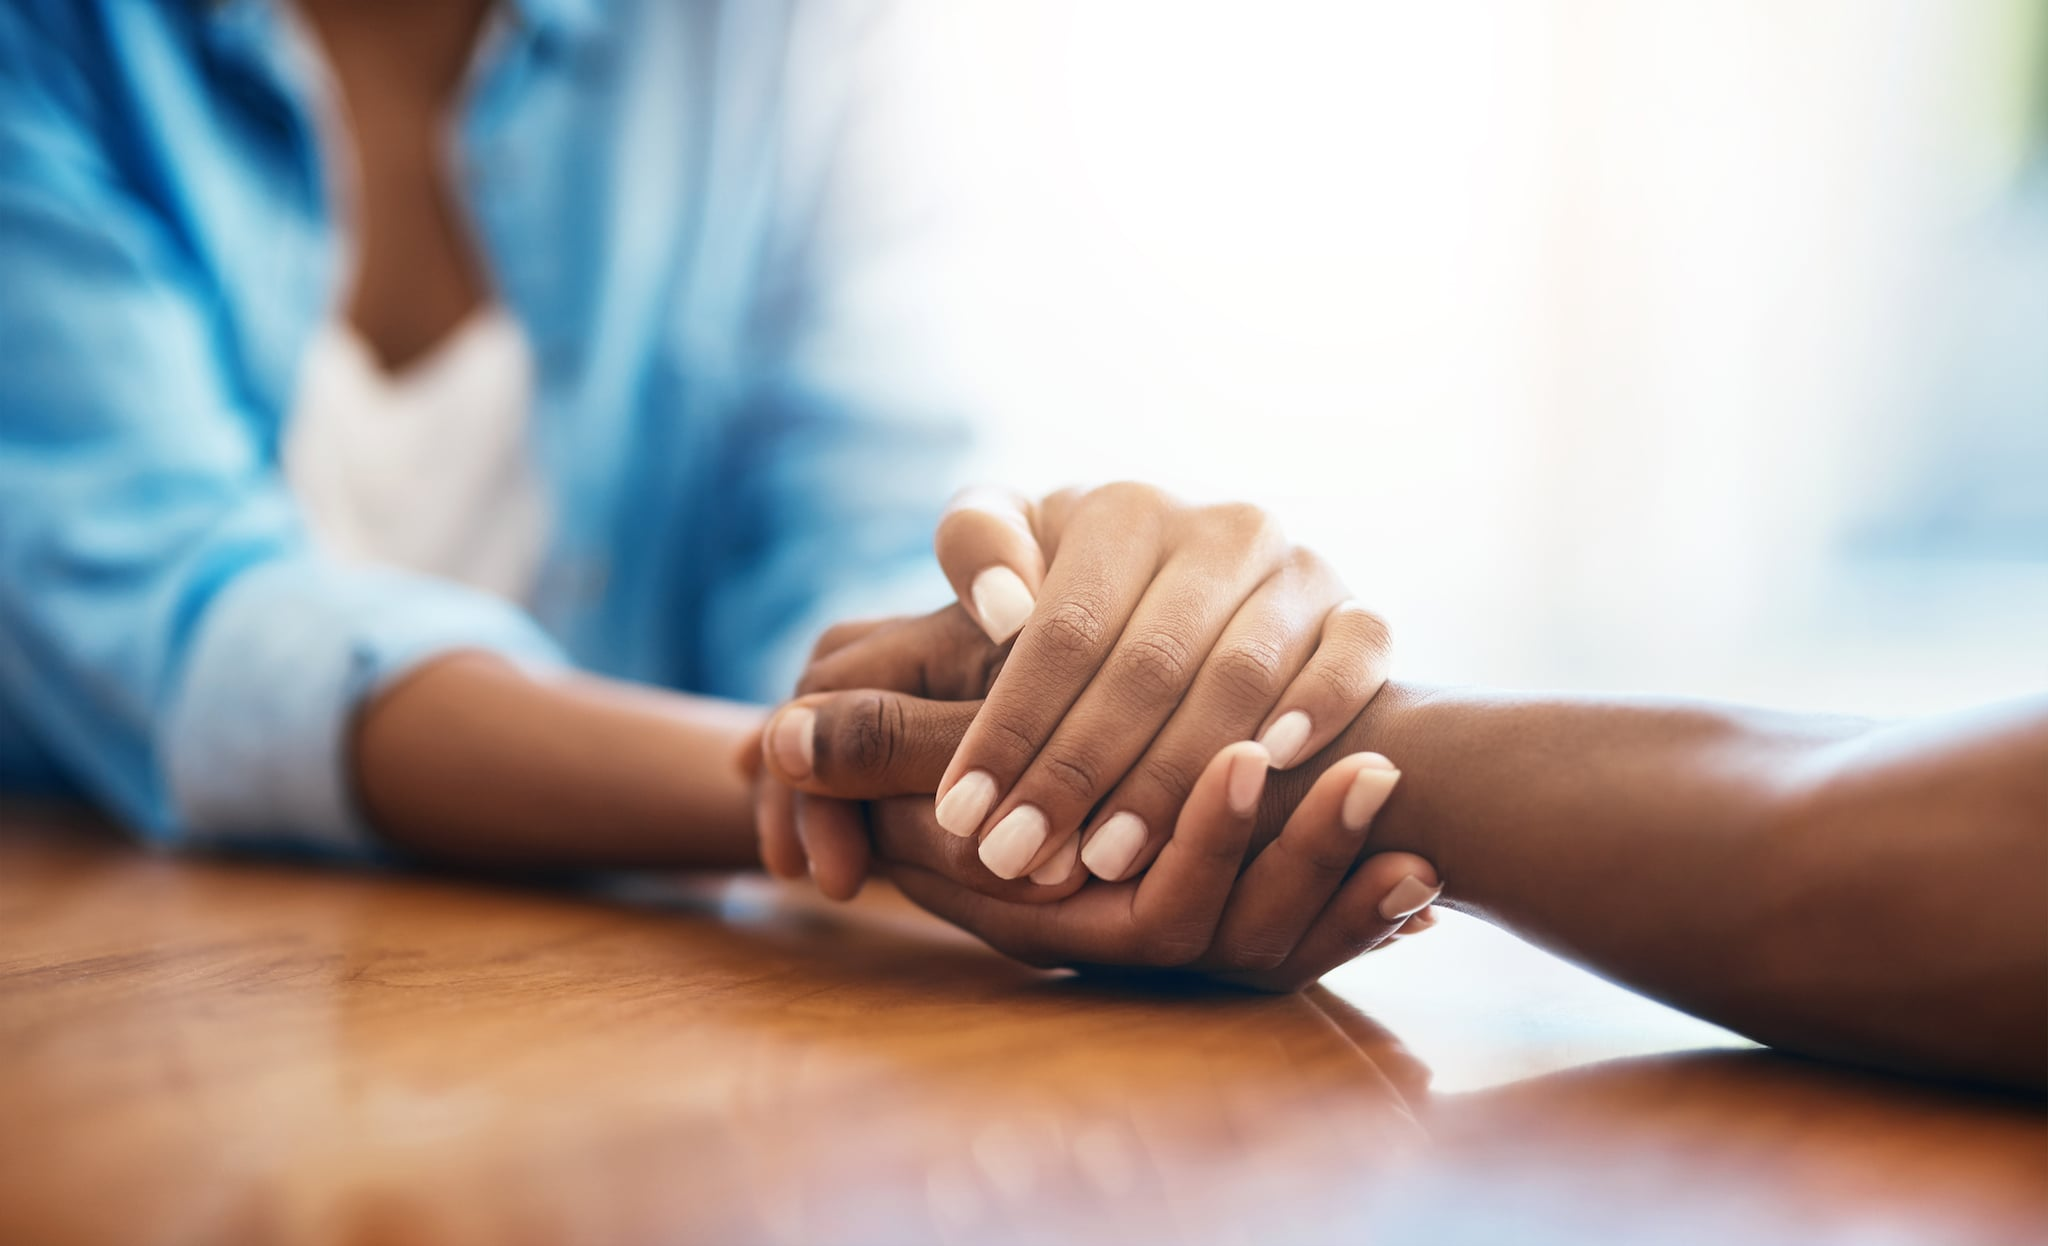 Closeup shot of two unrecognizable people holding hands in comfort at home